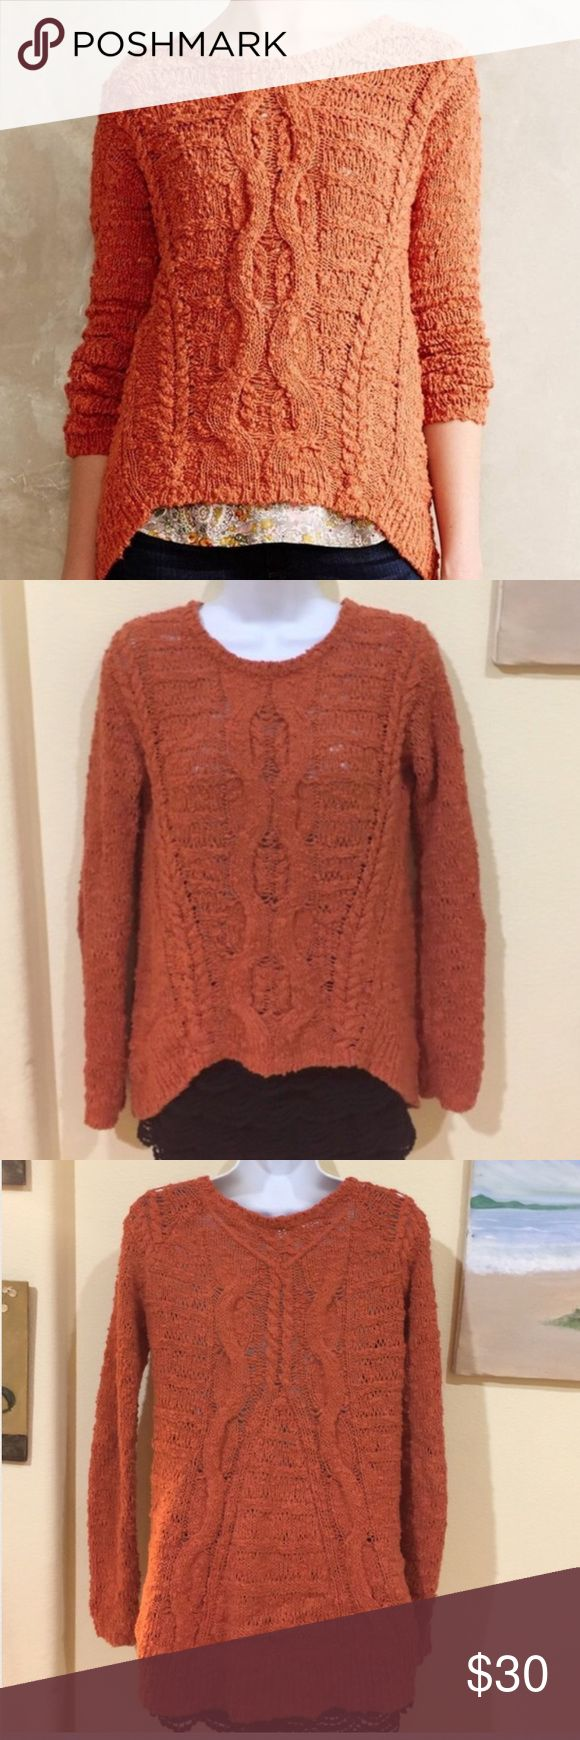 MOTH ANTHROPOLOGIE orange cream high & low sweater Gently worn , shorter in the front ,  tag says XS but fits like a size S , this is an Anthropologie brand, price NEGOTIABLE Anthropologie Sweaters